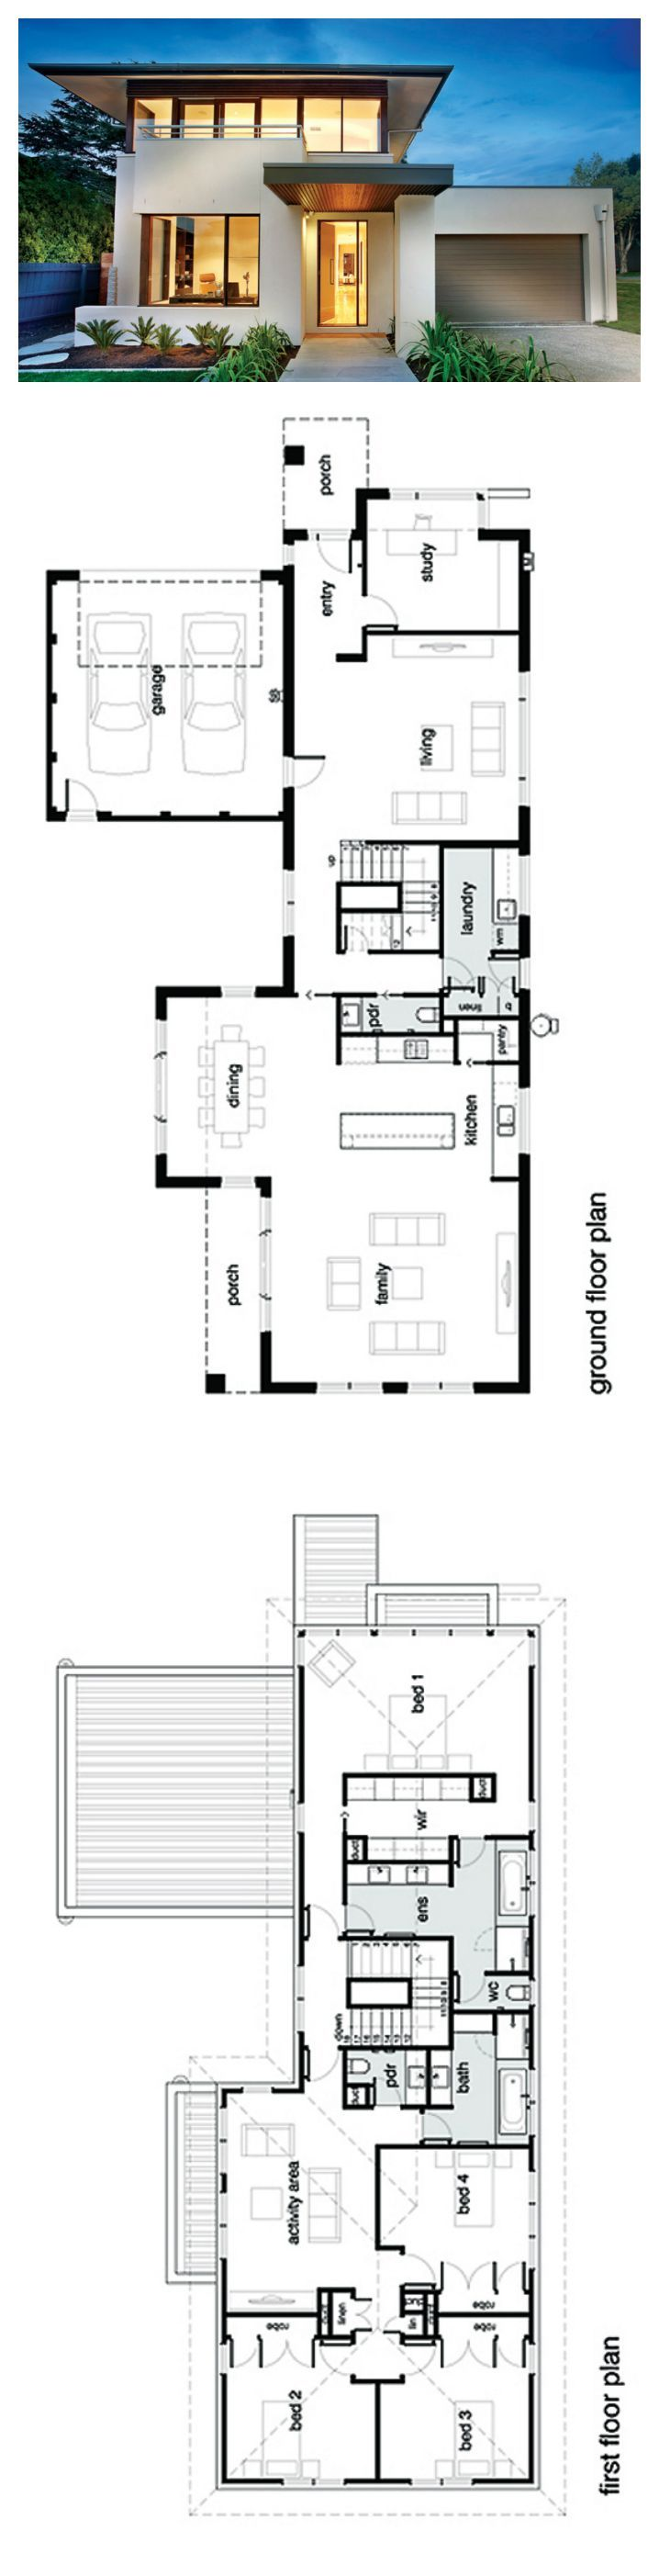 Best 25 modern house plans ideas on pinterest for Modern open floor house plans